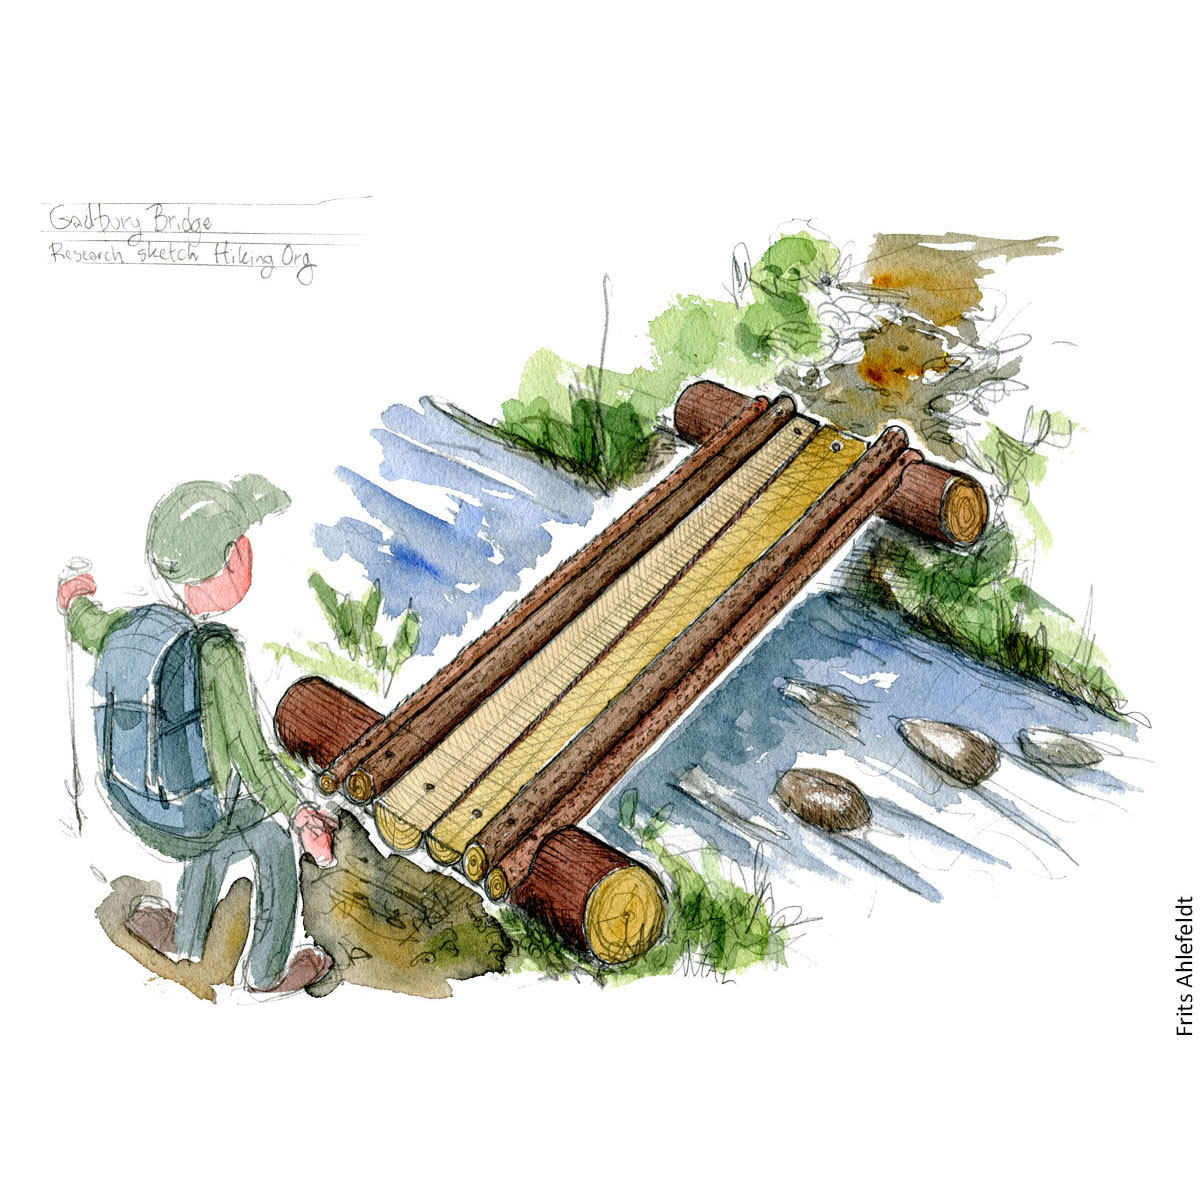 Concept of a gadbury bridge. made of tree trunks. Drawing by Frits Ahlefeldt. Hiking.org